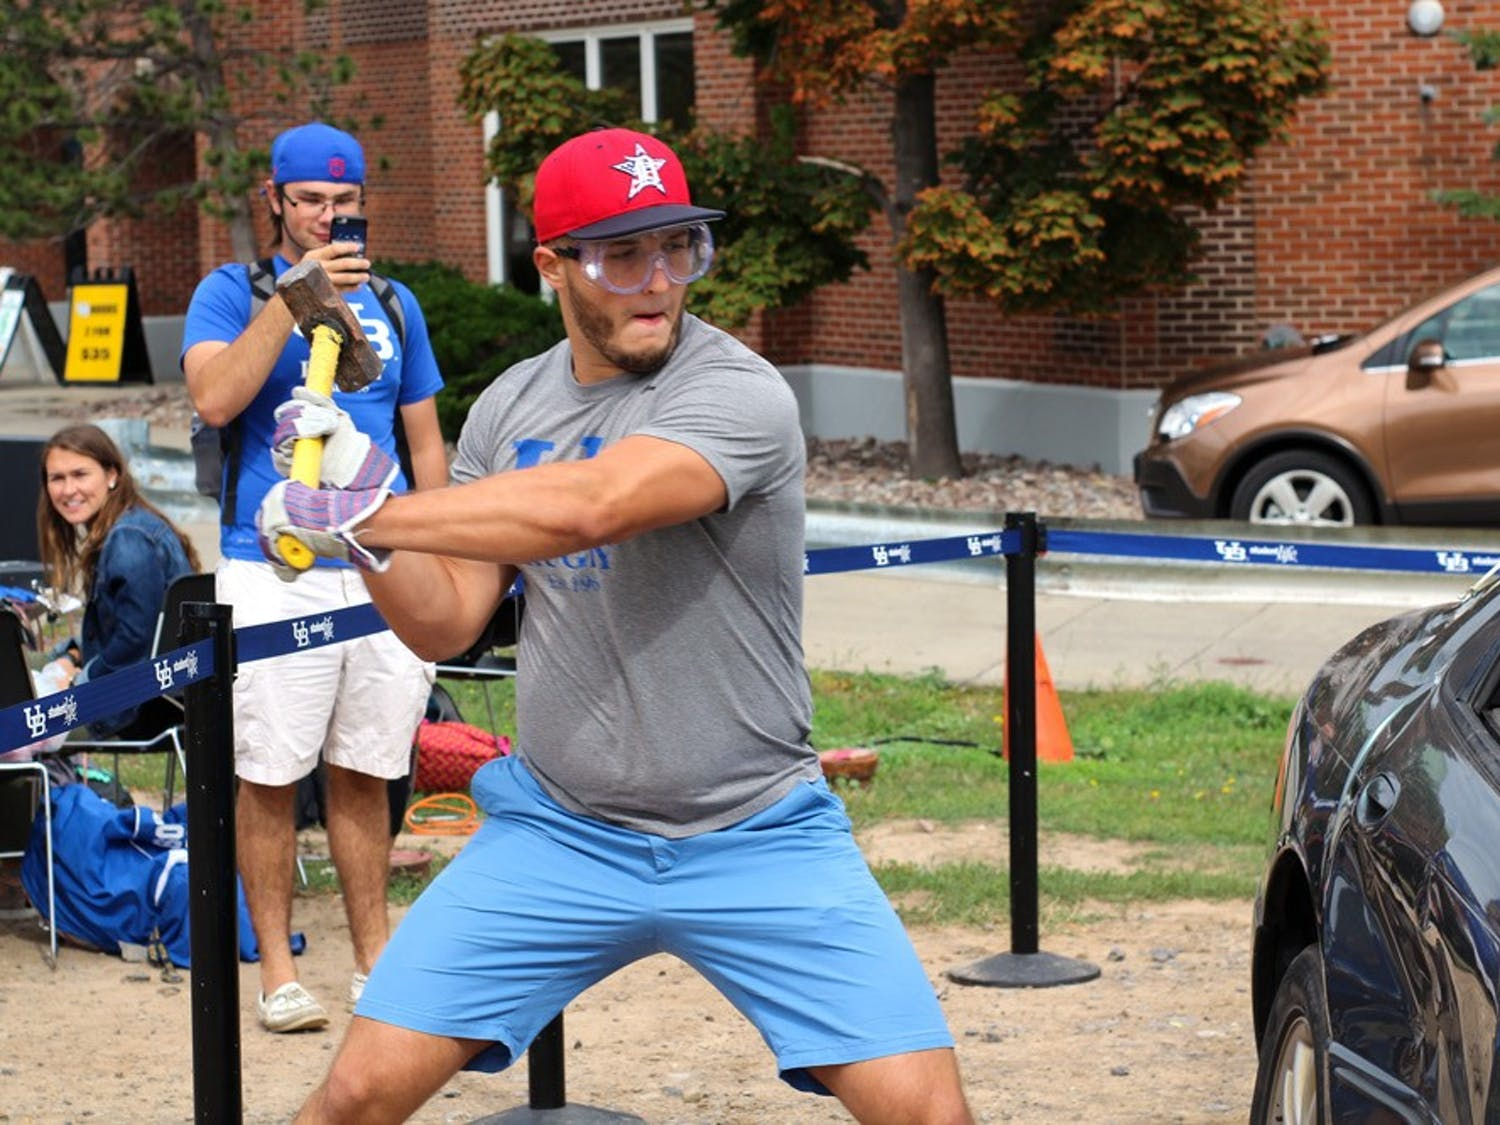 UB men's rugby club team and women's soccer club team hold annual car smashing event outside of the Student Union to promote drunk driving awareness.